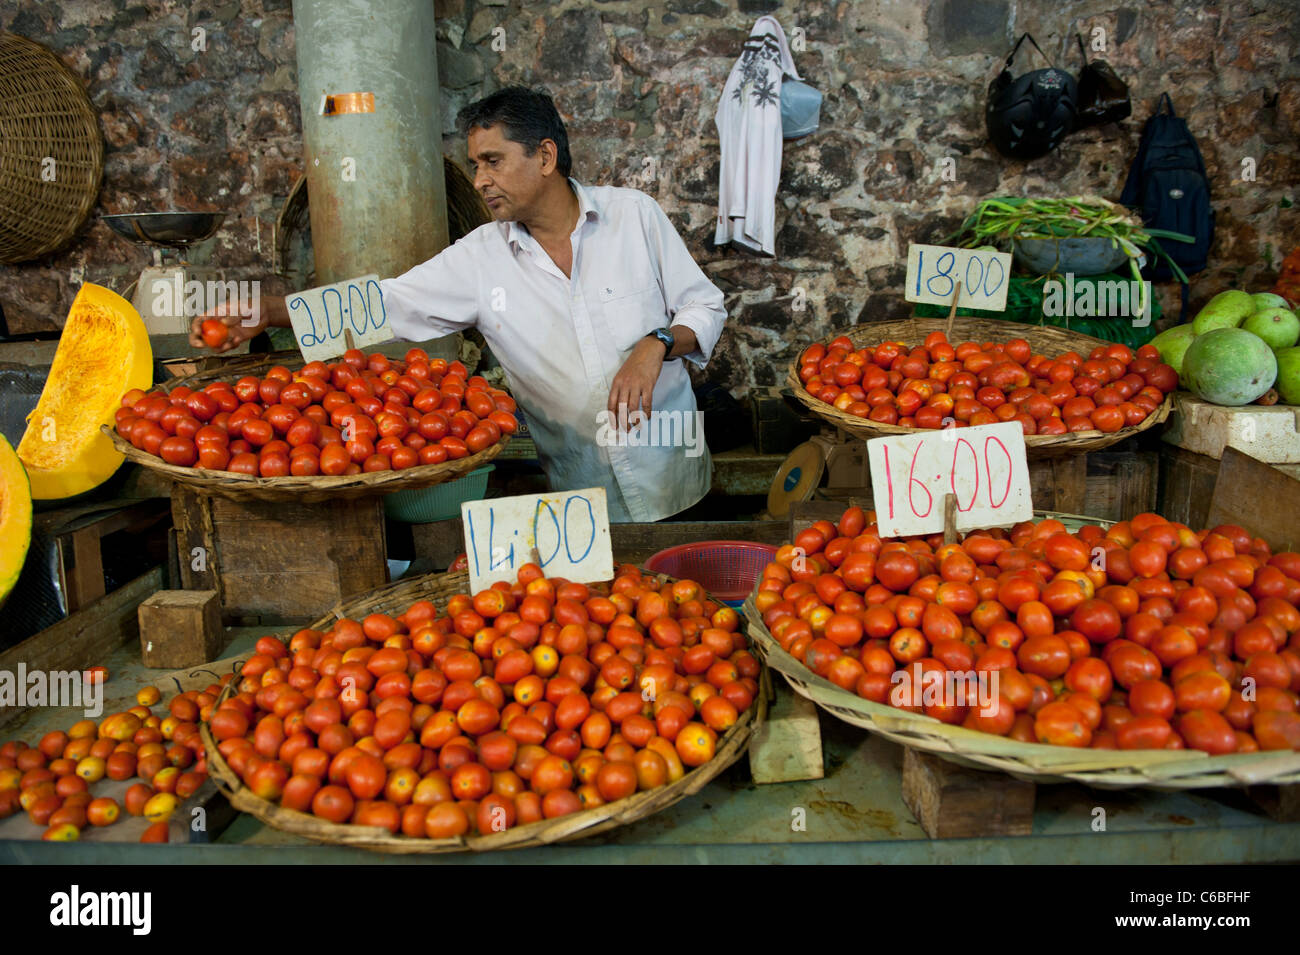 Fruit and vegetable market stall in central market port louis stock photo royalty free image - Mauritius market port louis ...